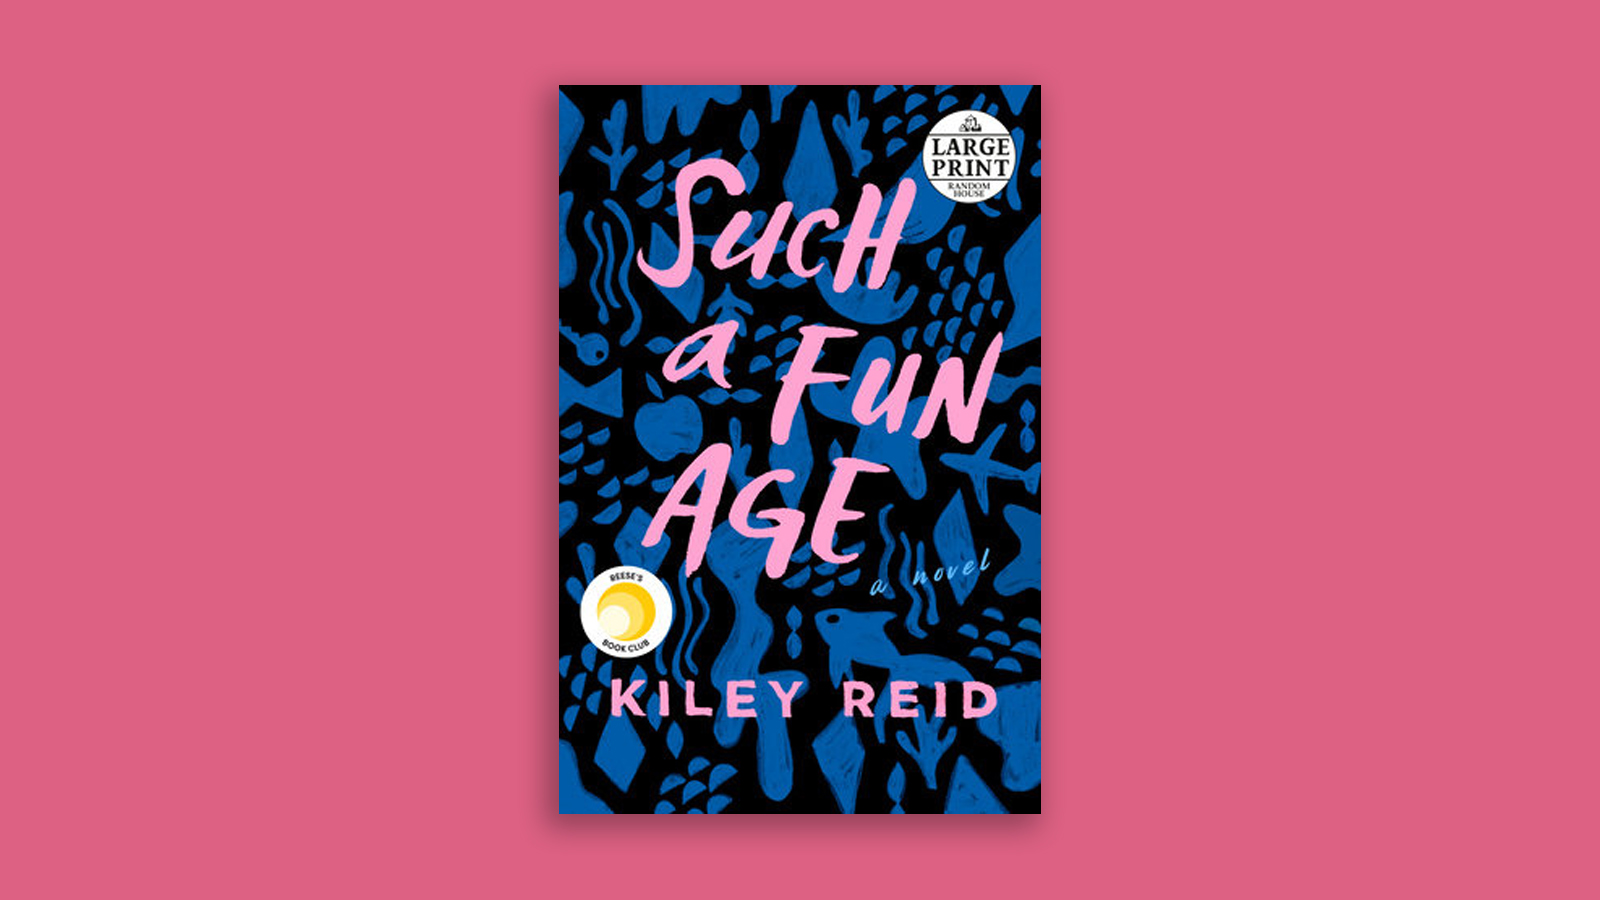 The book cover of Such a Fun Age by Kiley Reid